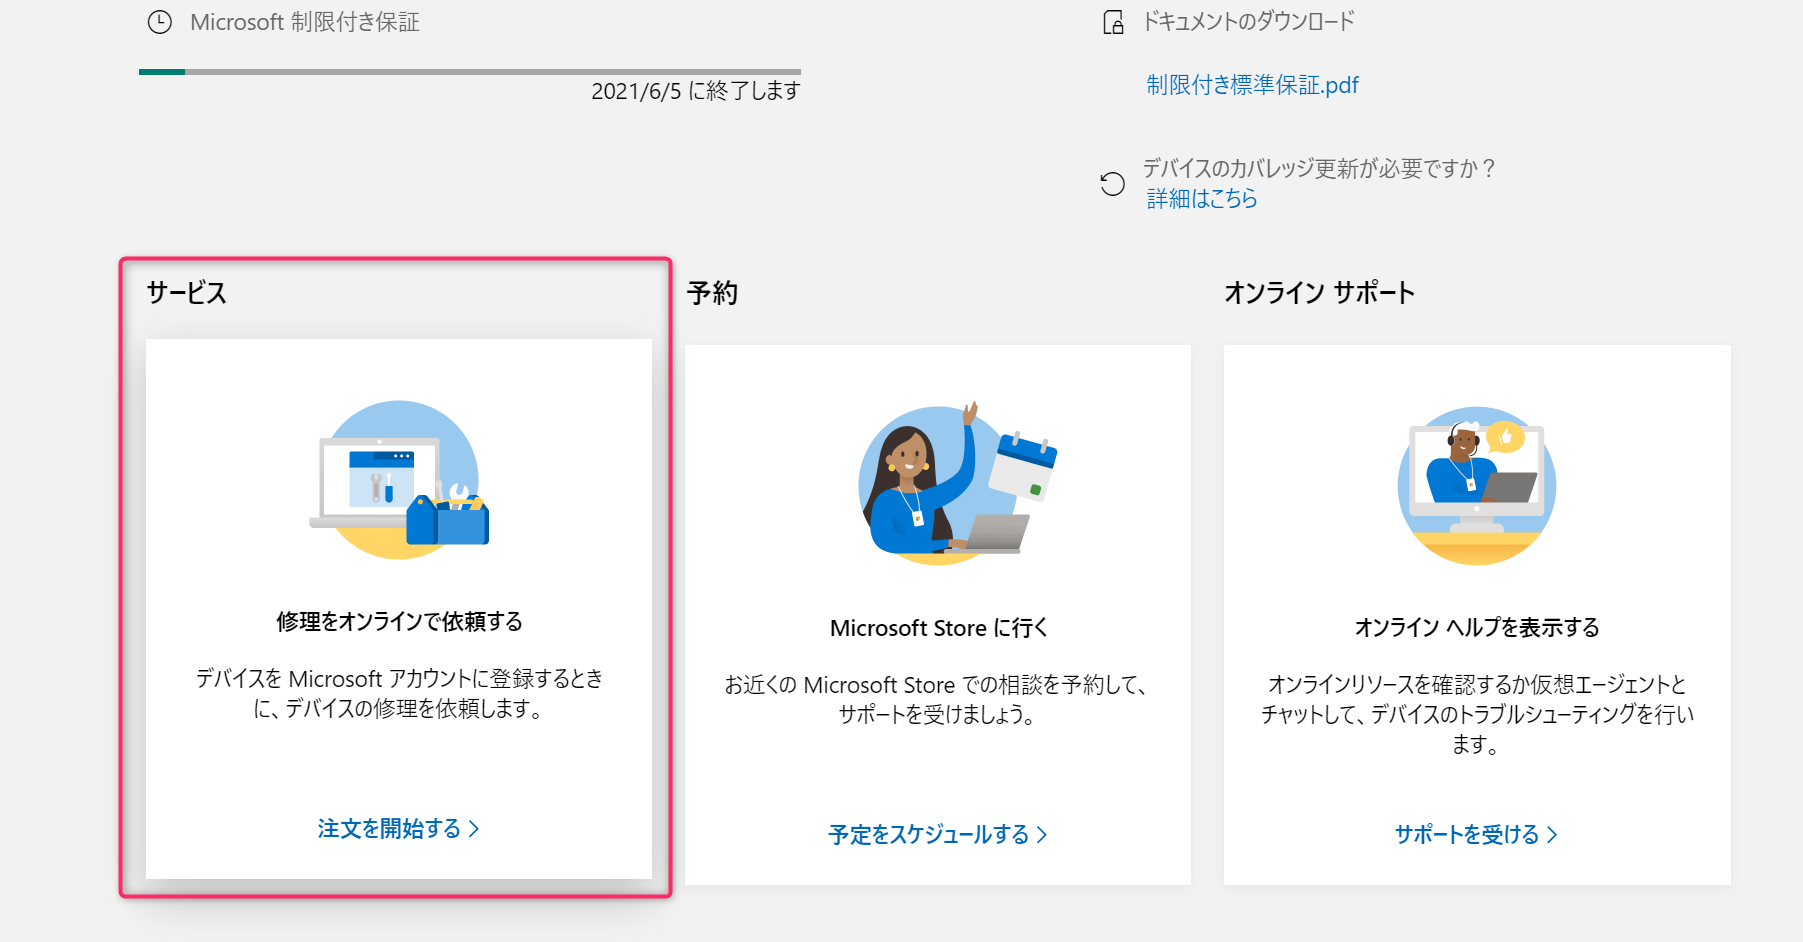 Surfaceの修理依頼の窓口